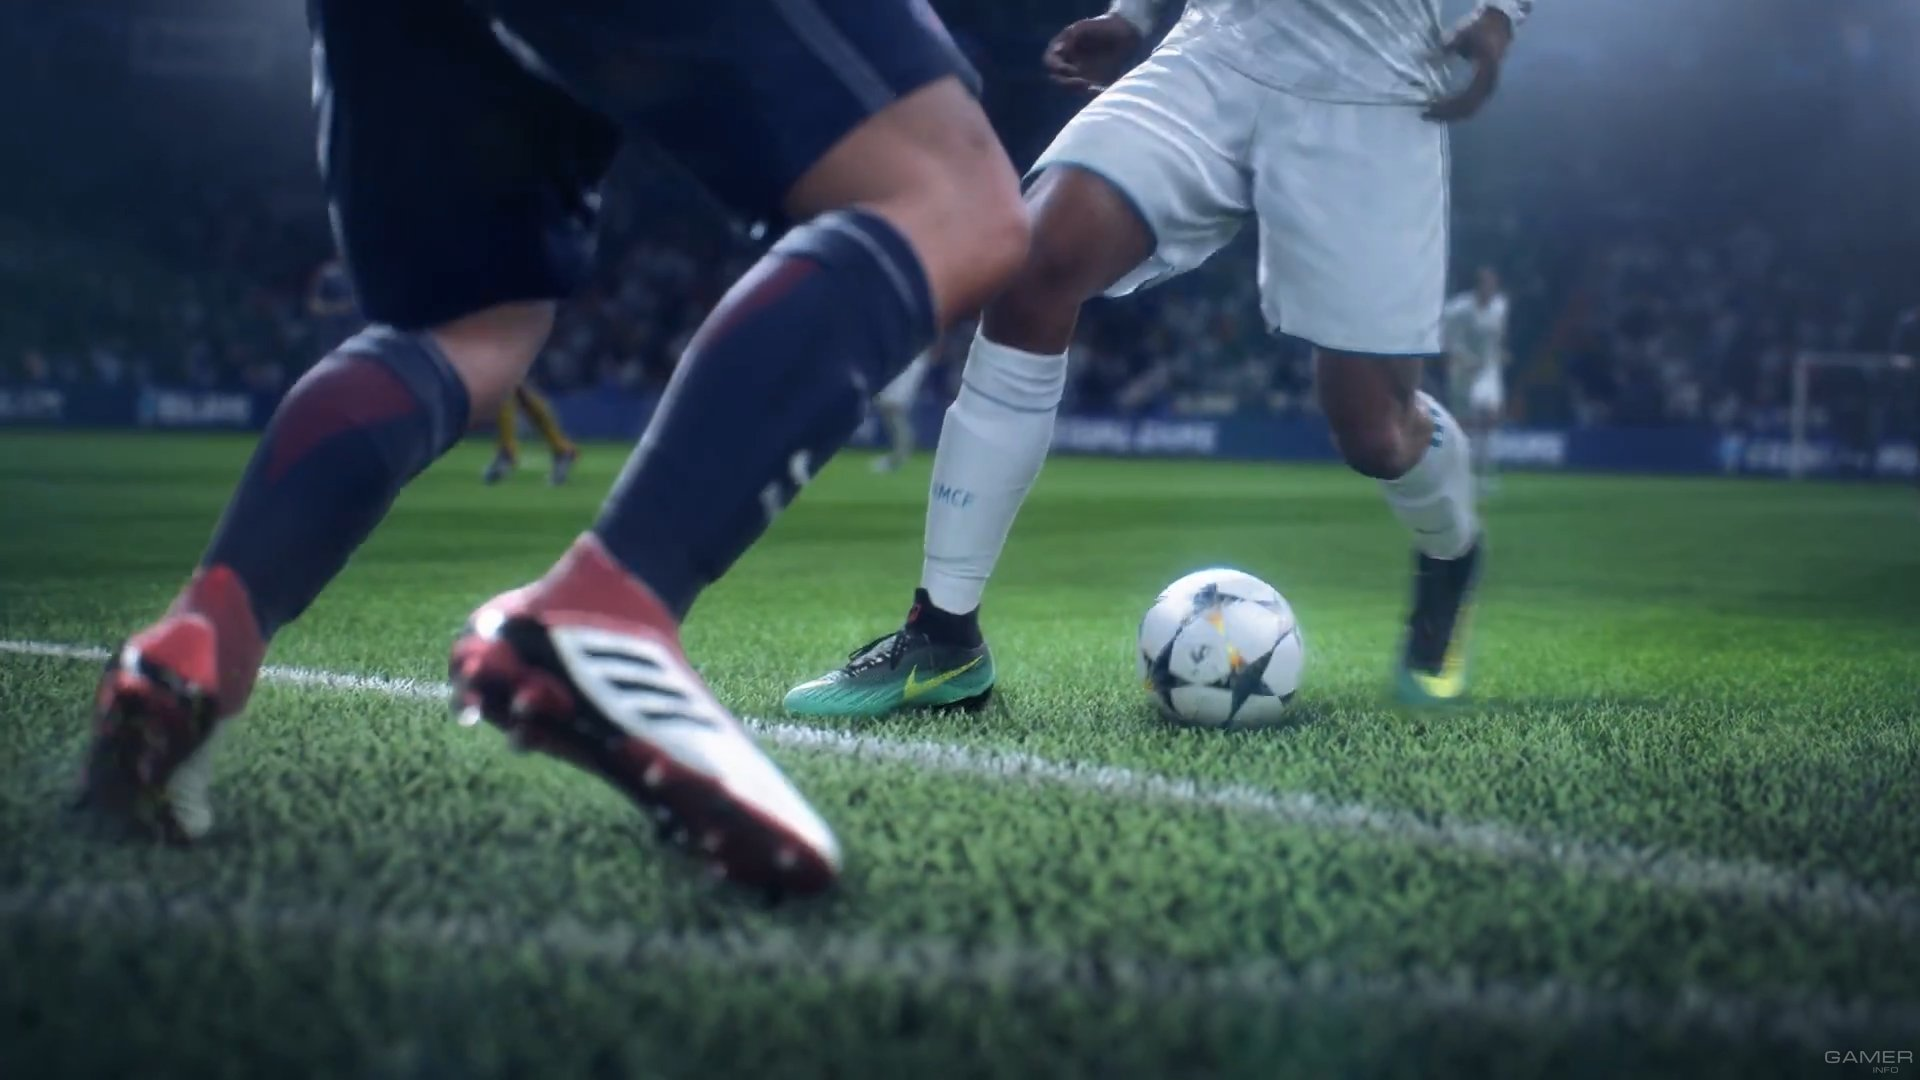 FIFA 19 (2018 video game)